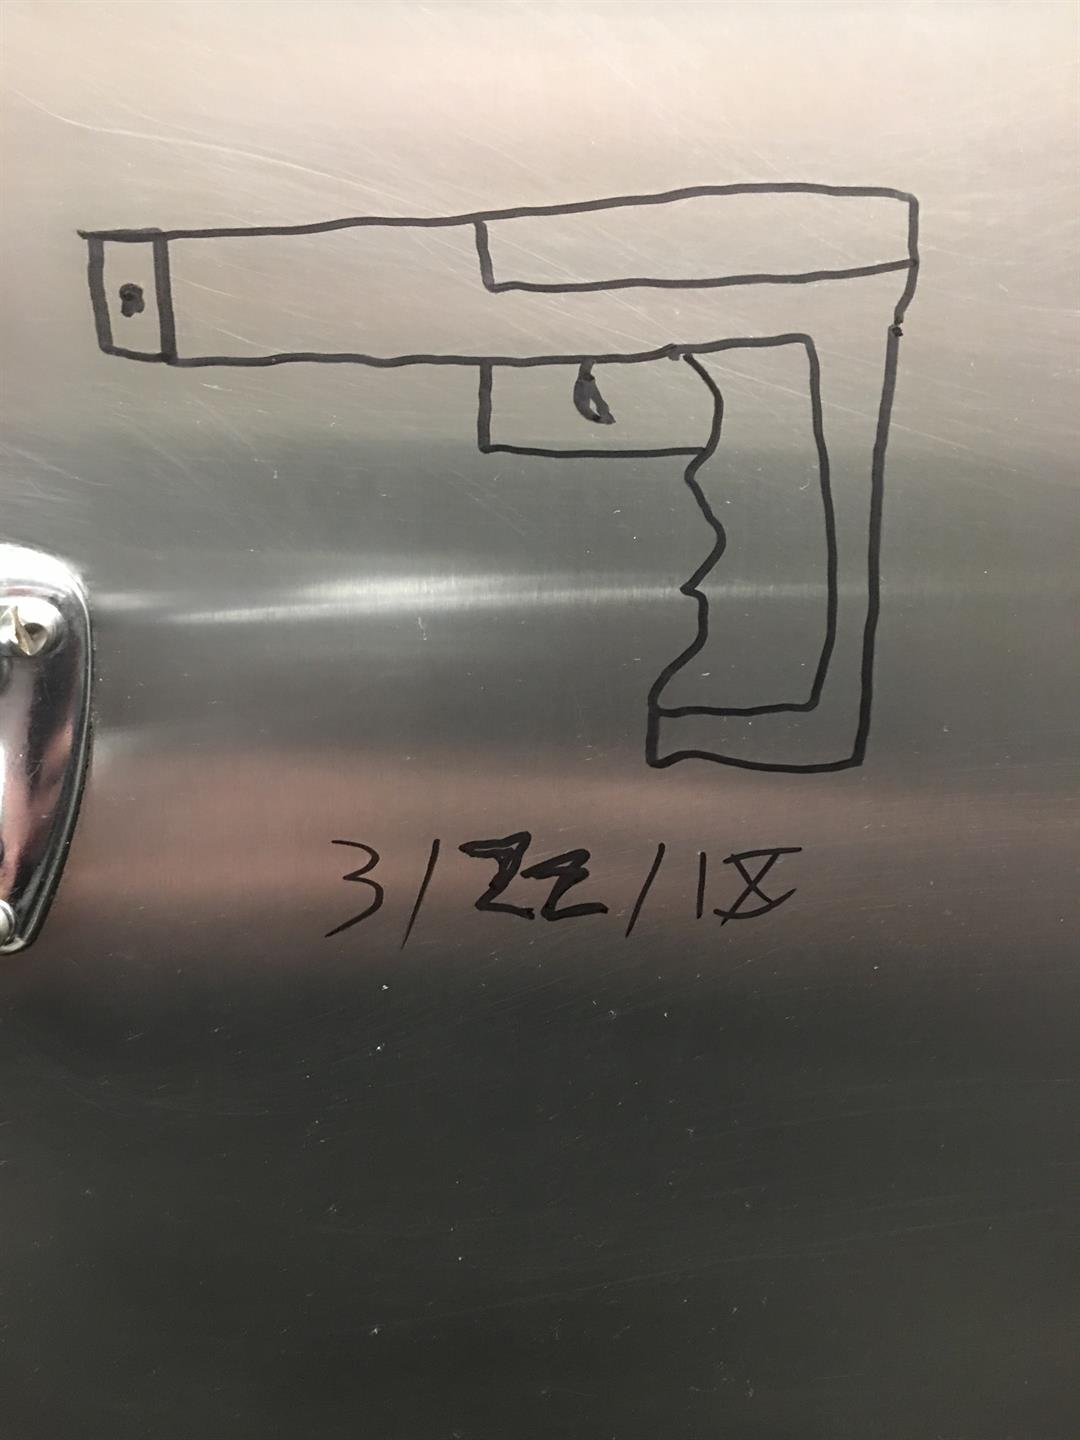 Drawing of threat found in bathroom on March 20 (Source: Delta College Public Safety)